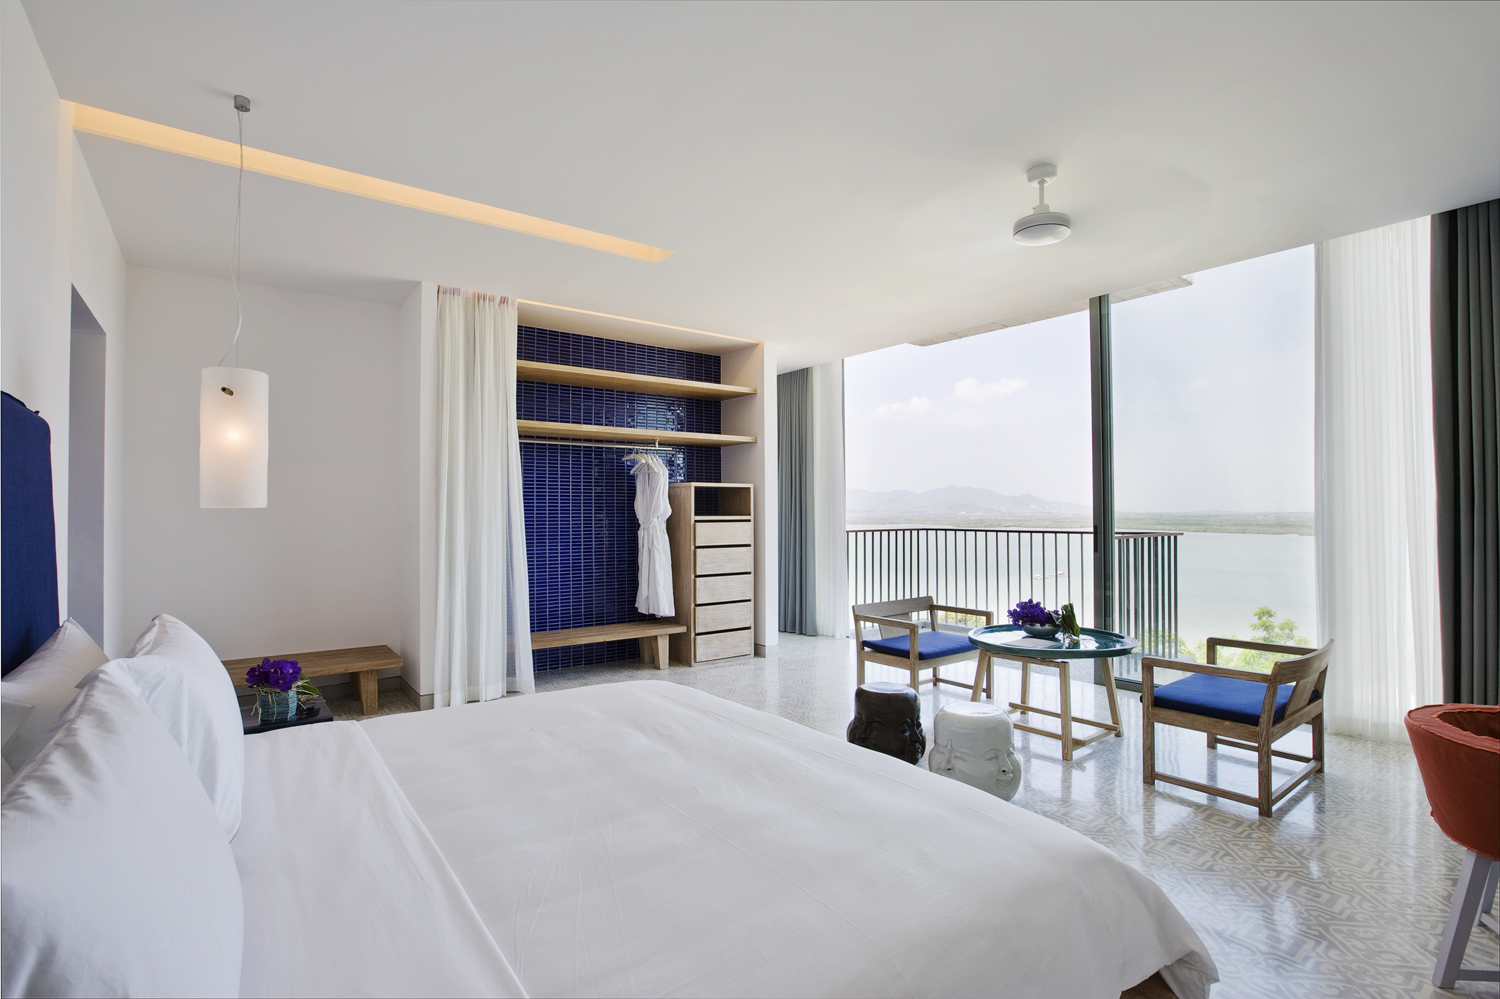 Bedrooms come in a choice of cobalt blue or turquoise schemes, teamed with soothing white, wood and tactile tiles. Floor-to-ceiling windows and balconies offer vistas of Phang Nga Bay